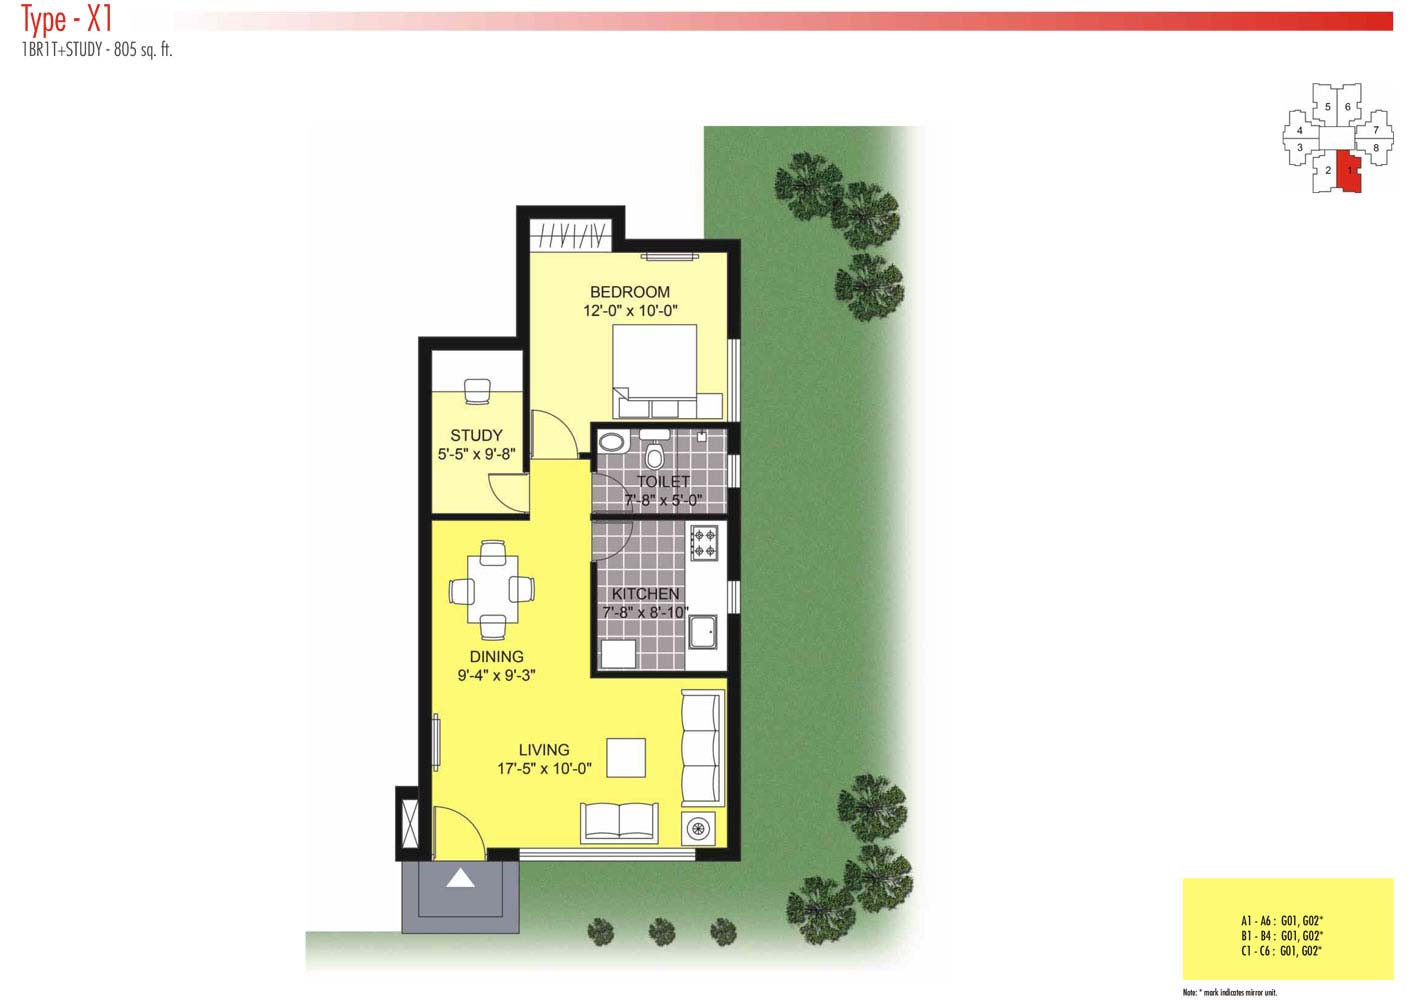 Floor Plans-1BR1T-805 sq.ft.